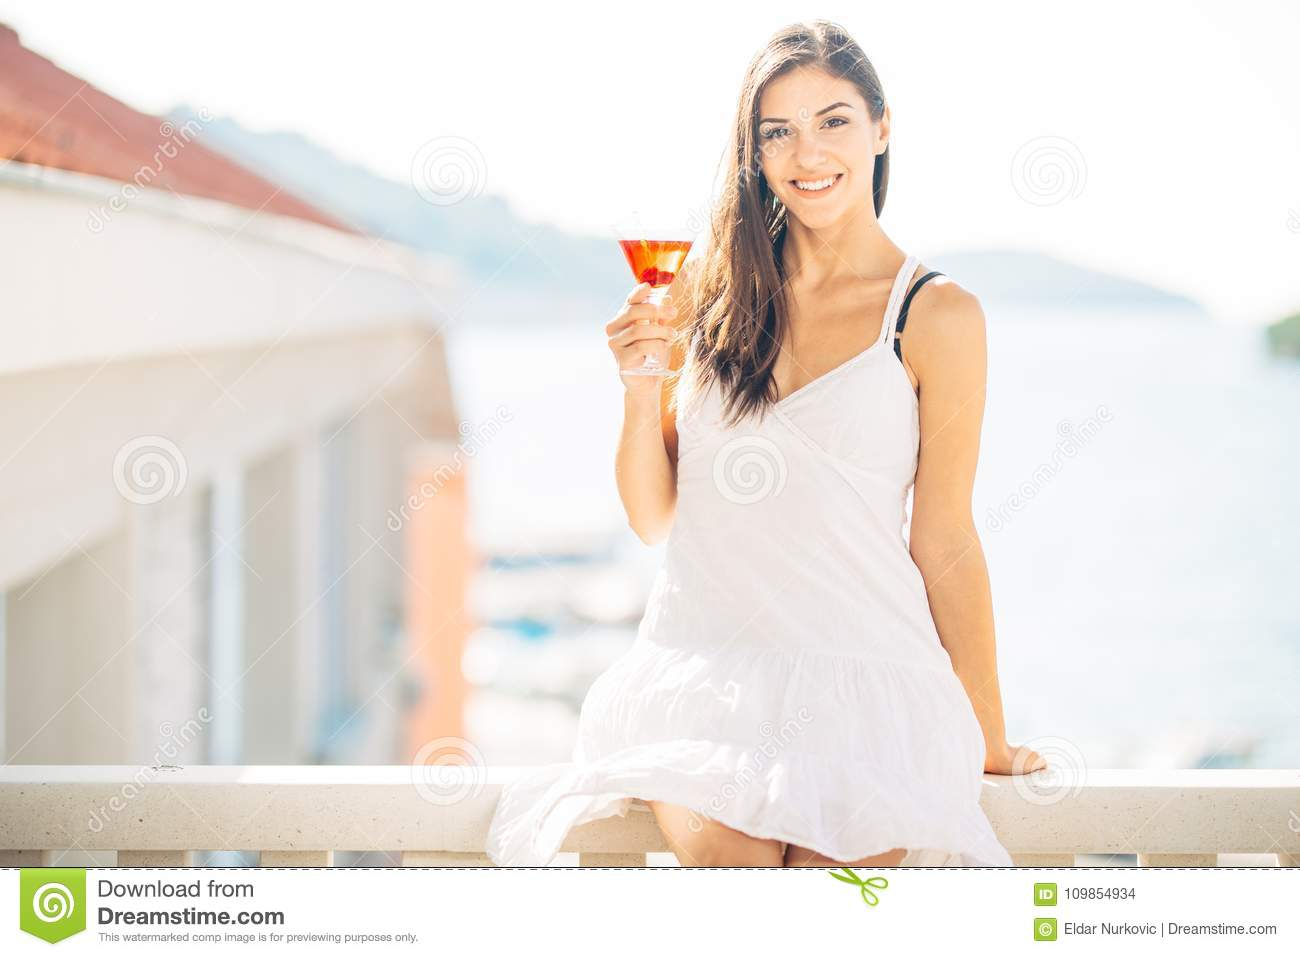 Attractive young woman drinking fruit alcoholic cocktail and enjoying her summer vacation.Holding glass of cold refreshing drink